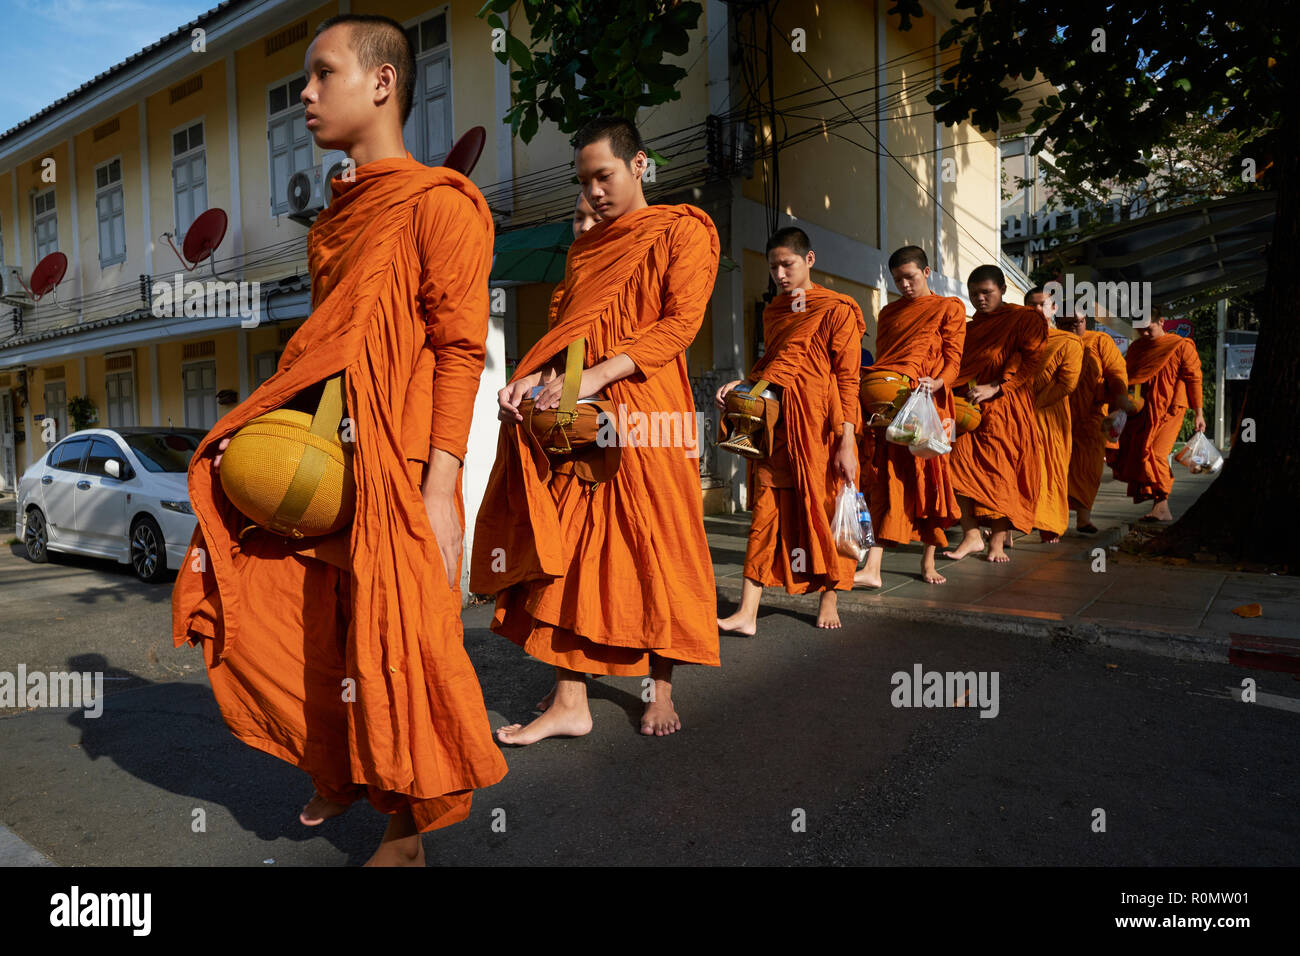 Novice monks or Samanen of Wat Mahathat in Bangkok, Thailand, during their early morning alms round in the temple's vicinity - Stock Image